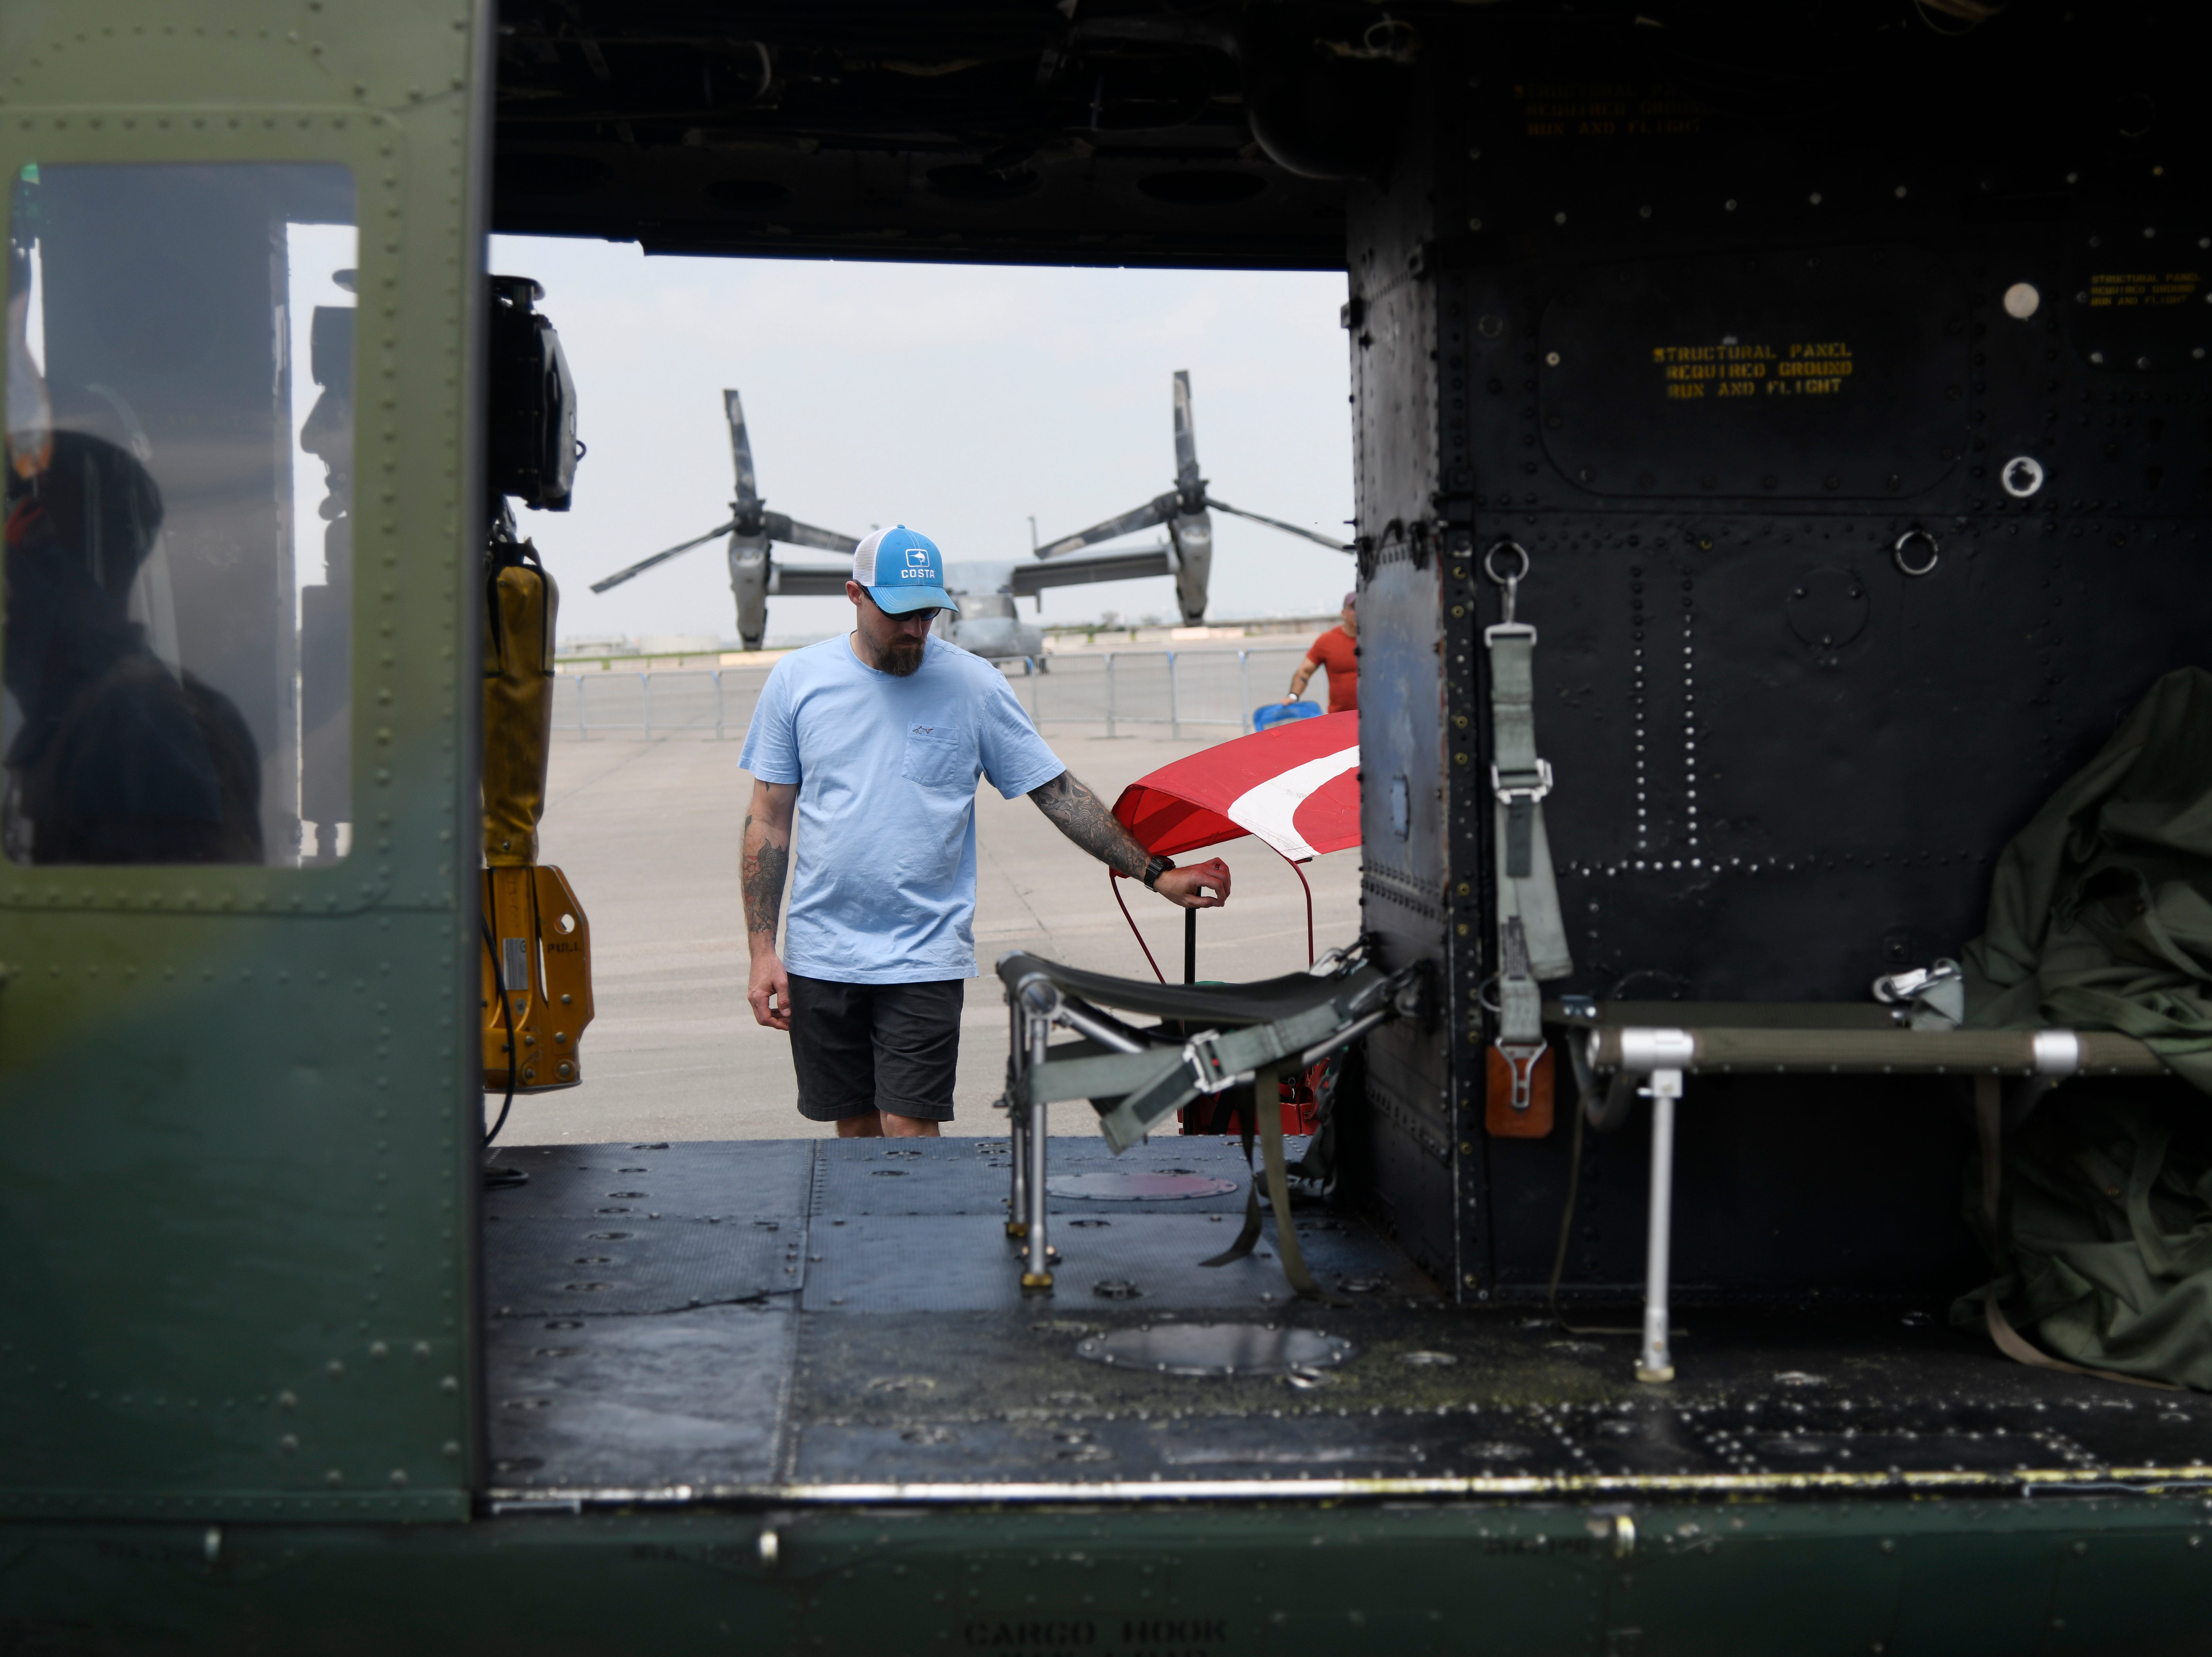 An attendee looks at the inside of a helicopter before the Wings Over South Texas Air Show, Saturday, April 13, 2019, at NAS Corpus Christi.